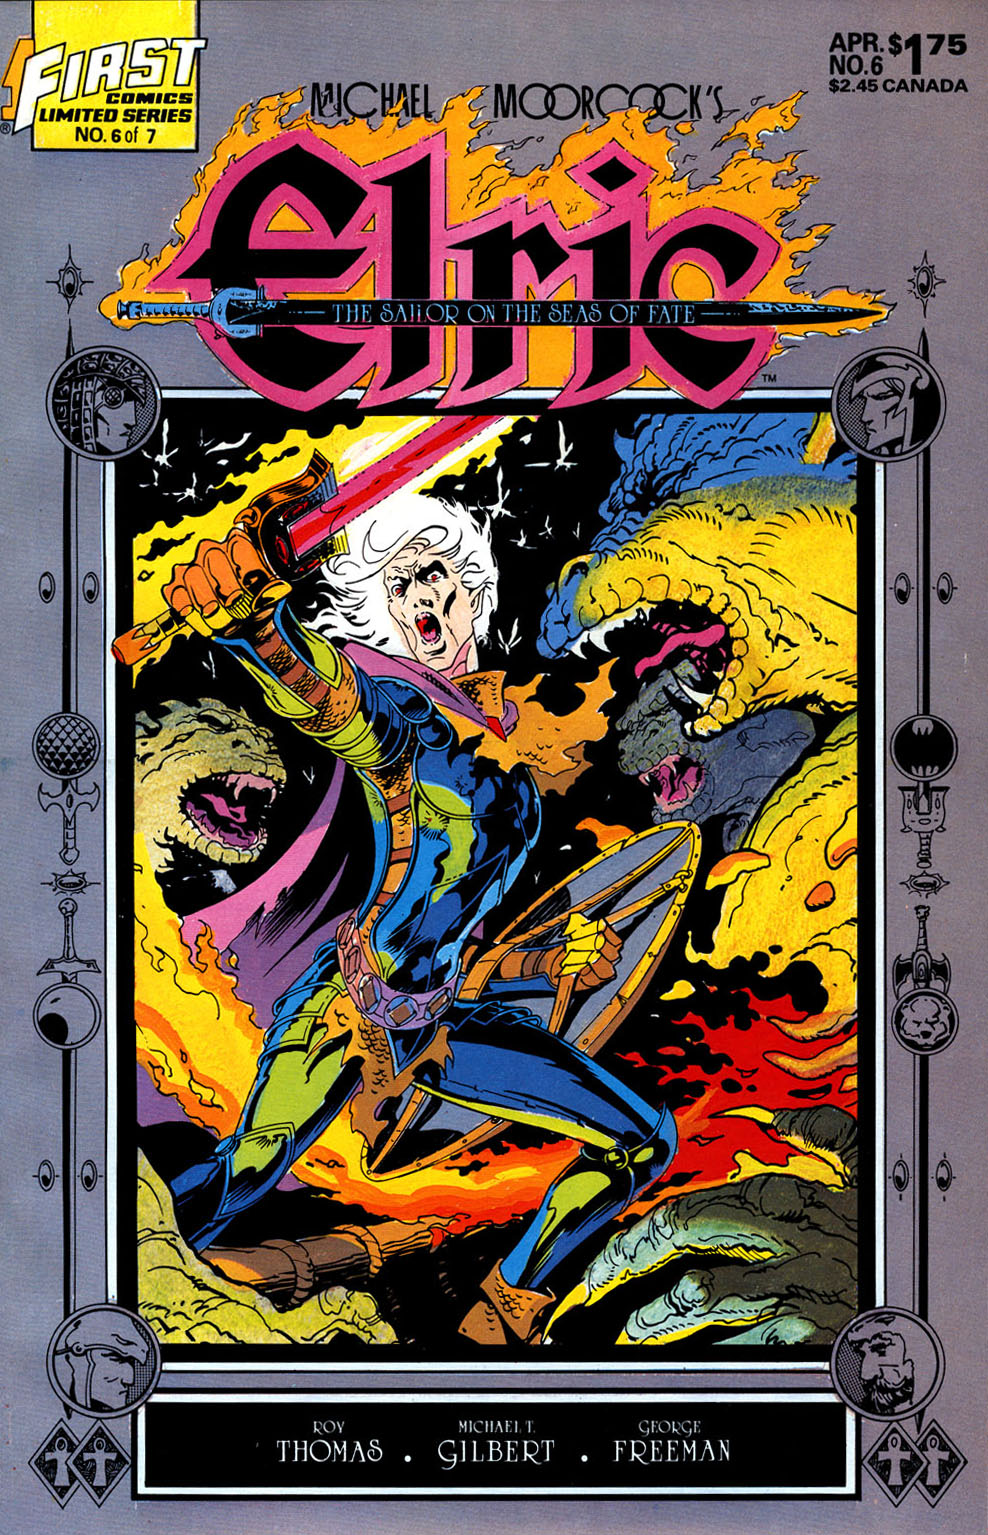 Read online Elric: Sailor on the Seas of Fate comic -  Issue #6 - 1